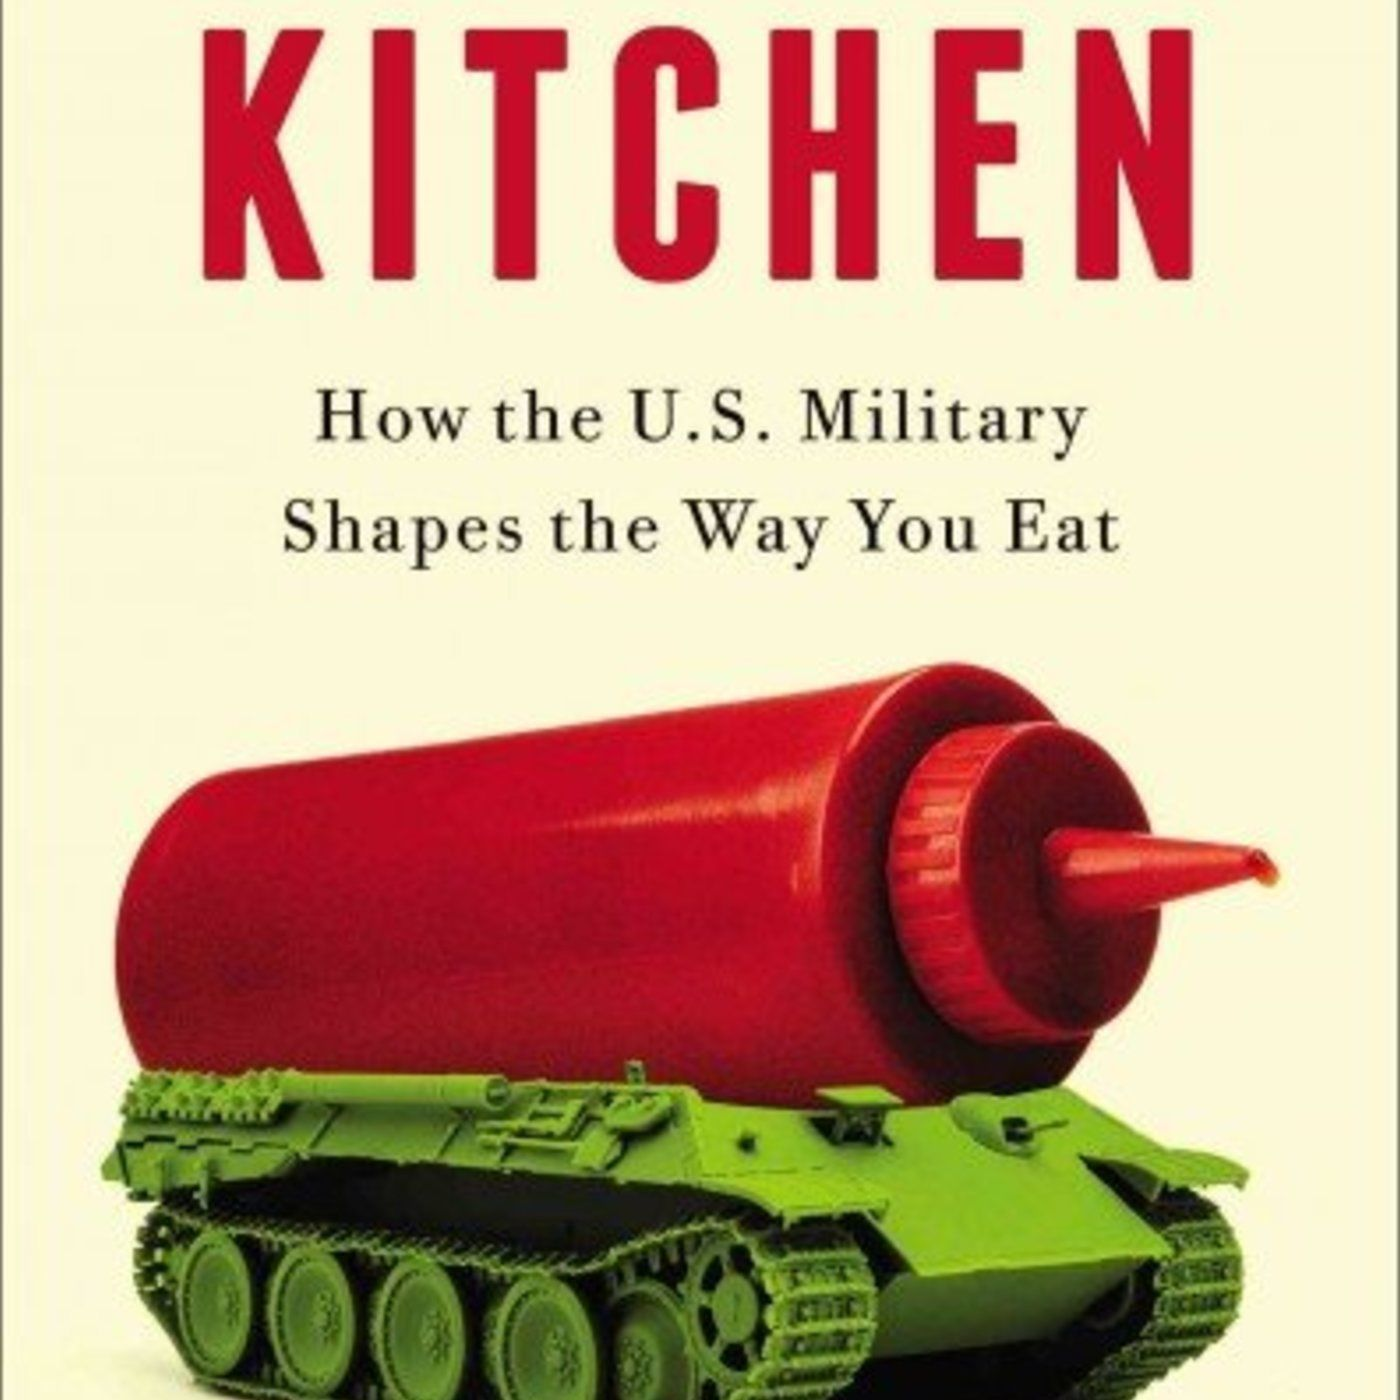 Episode 225: Evolution of Military Rations & Their Influence on Our Diet